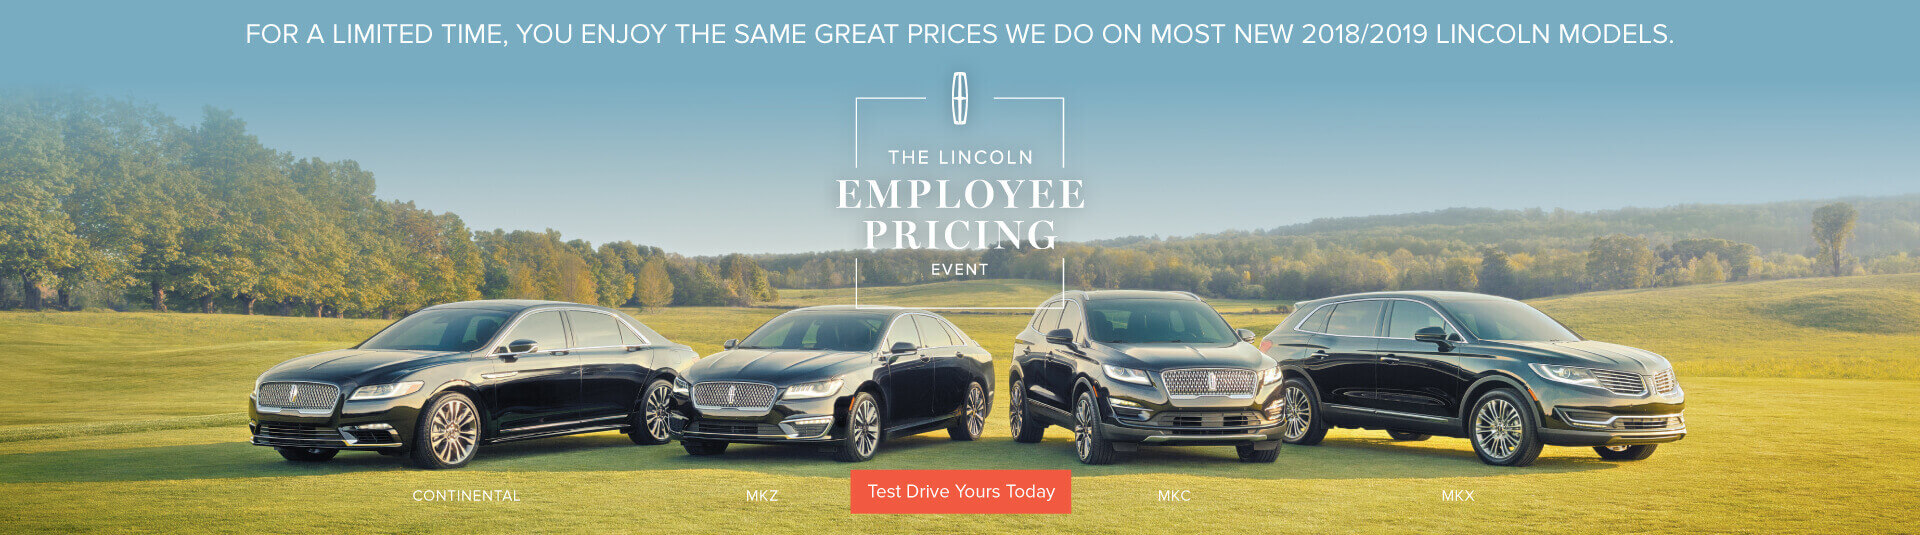 Lincoln Employee Pricing